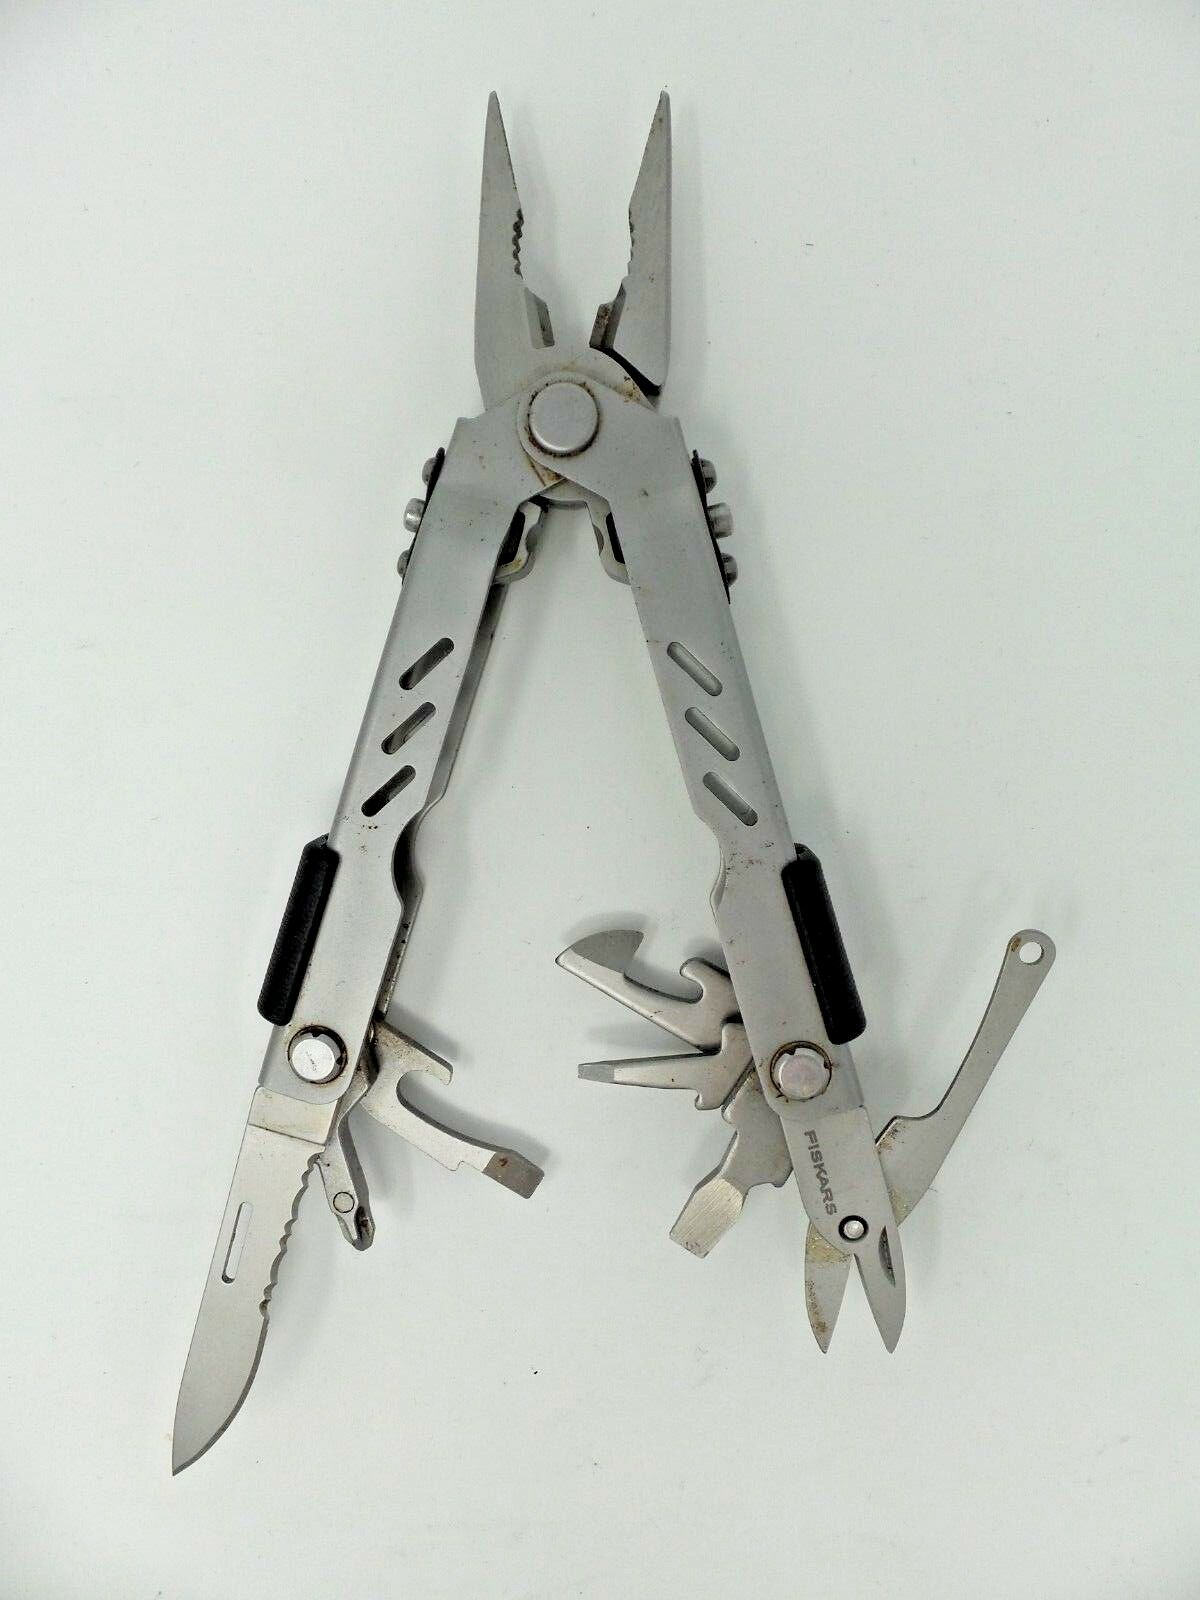 Gerber Compact Multi-Tool Needlenose Pliers  [Various] Comes w  Nylon Sheath  top brand